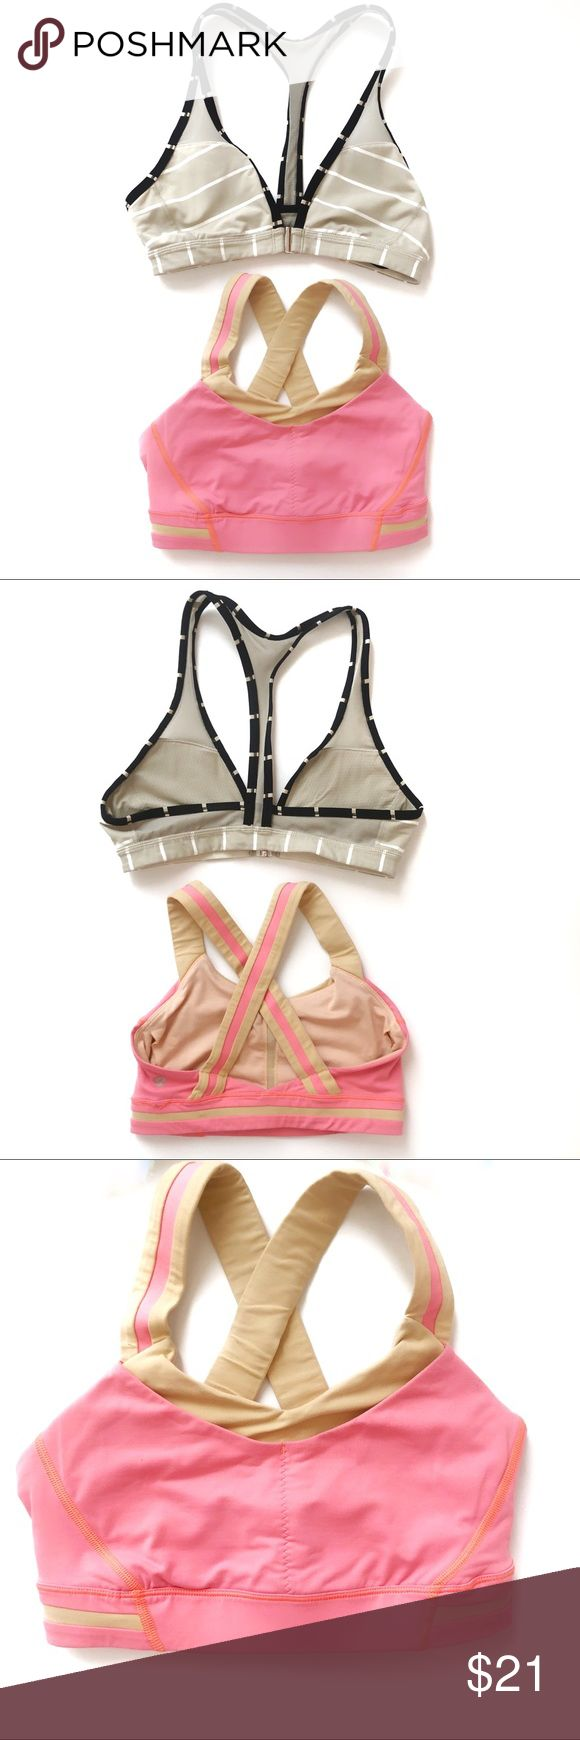 BOGO🌟Bundle of TWO Lululemon Sports Bras! Buy one get one free! Bundle of two sports bras by Lululemon. One pink & beige crossed back, one black & ecru striped racerback. In great used condition! Only flaw is on the pink bra - a little blemish on one seam (see photo). Both size Small. Purchased brand new from Lululemon and only worn a handful of times. Offers welcome! 🎀🌟🎀 Tags: Athleta Nike Teeki Adidas Reebok Prana Running Gym Athletica Lemons Secret Free People lululemon athletica…